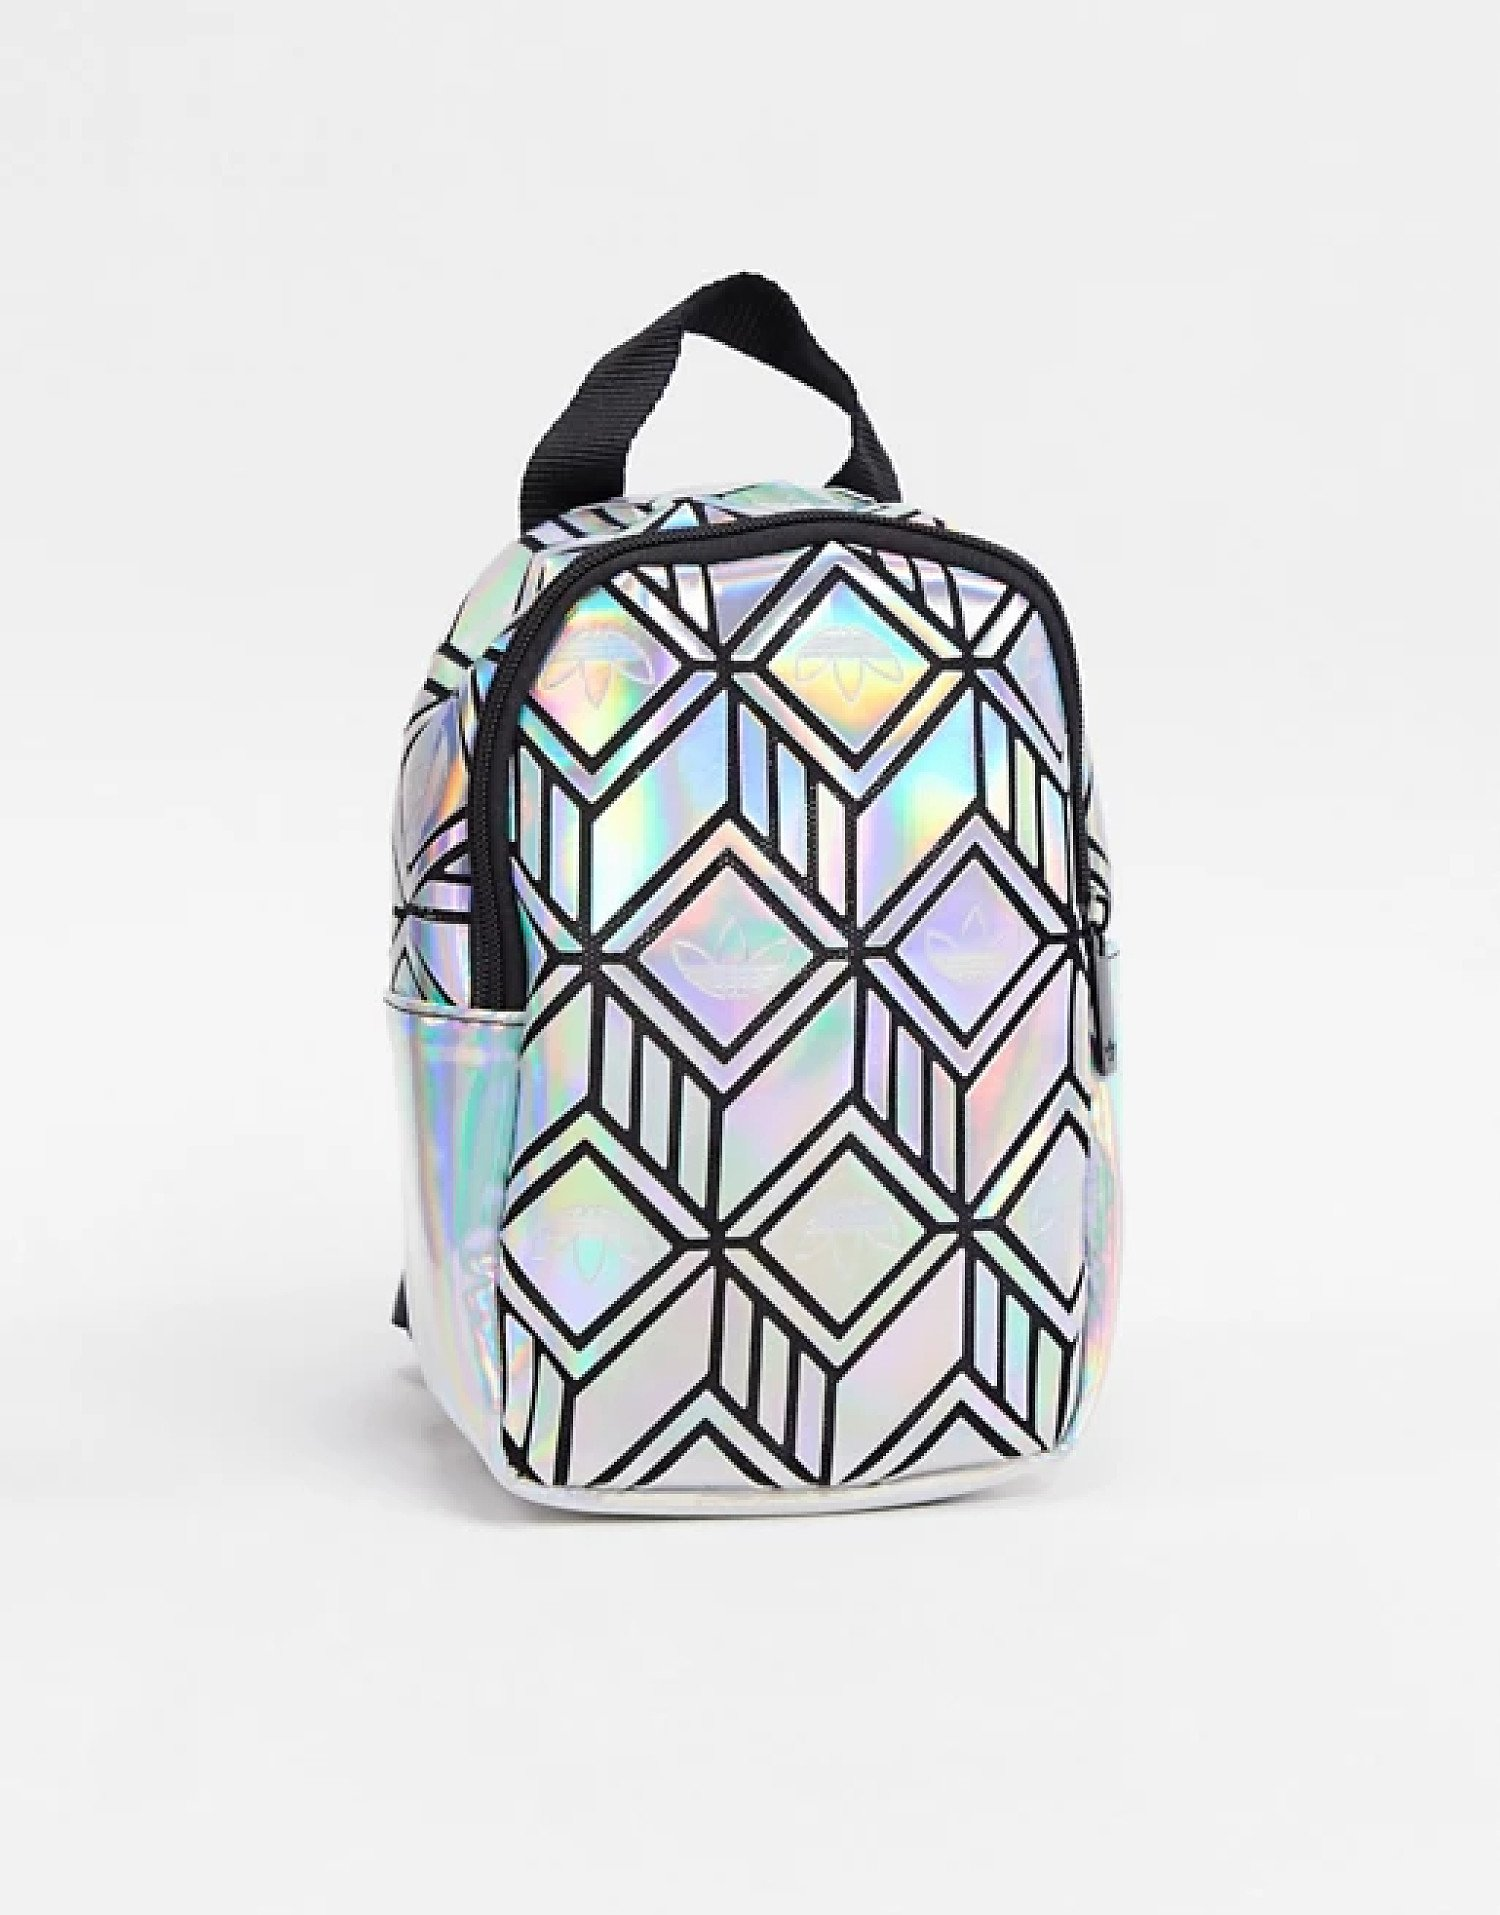 SAVE - adidas Originals 3D geo backpack in silver!